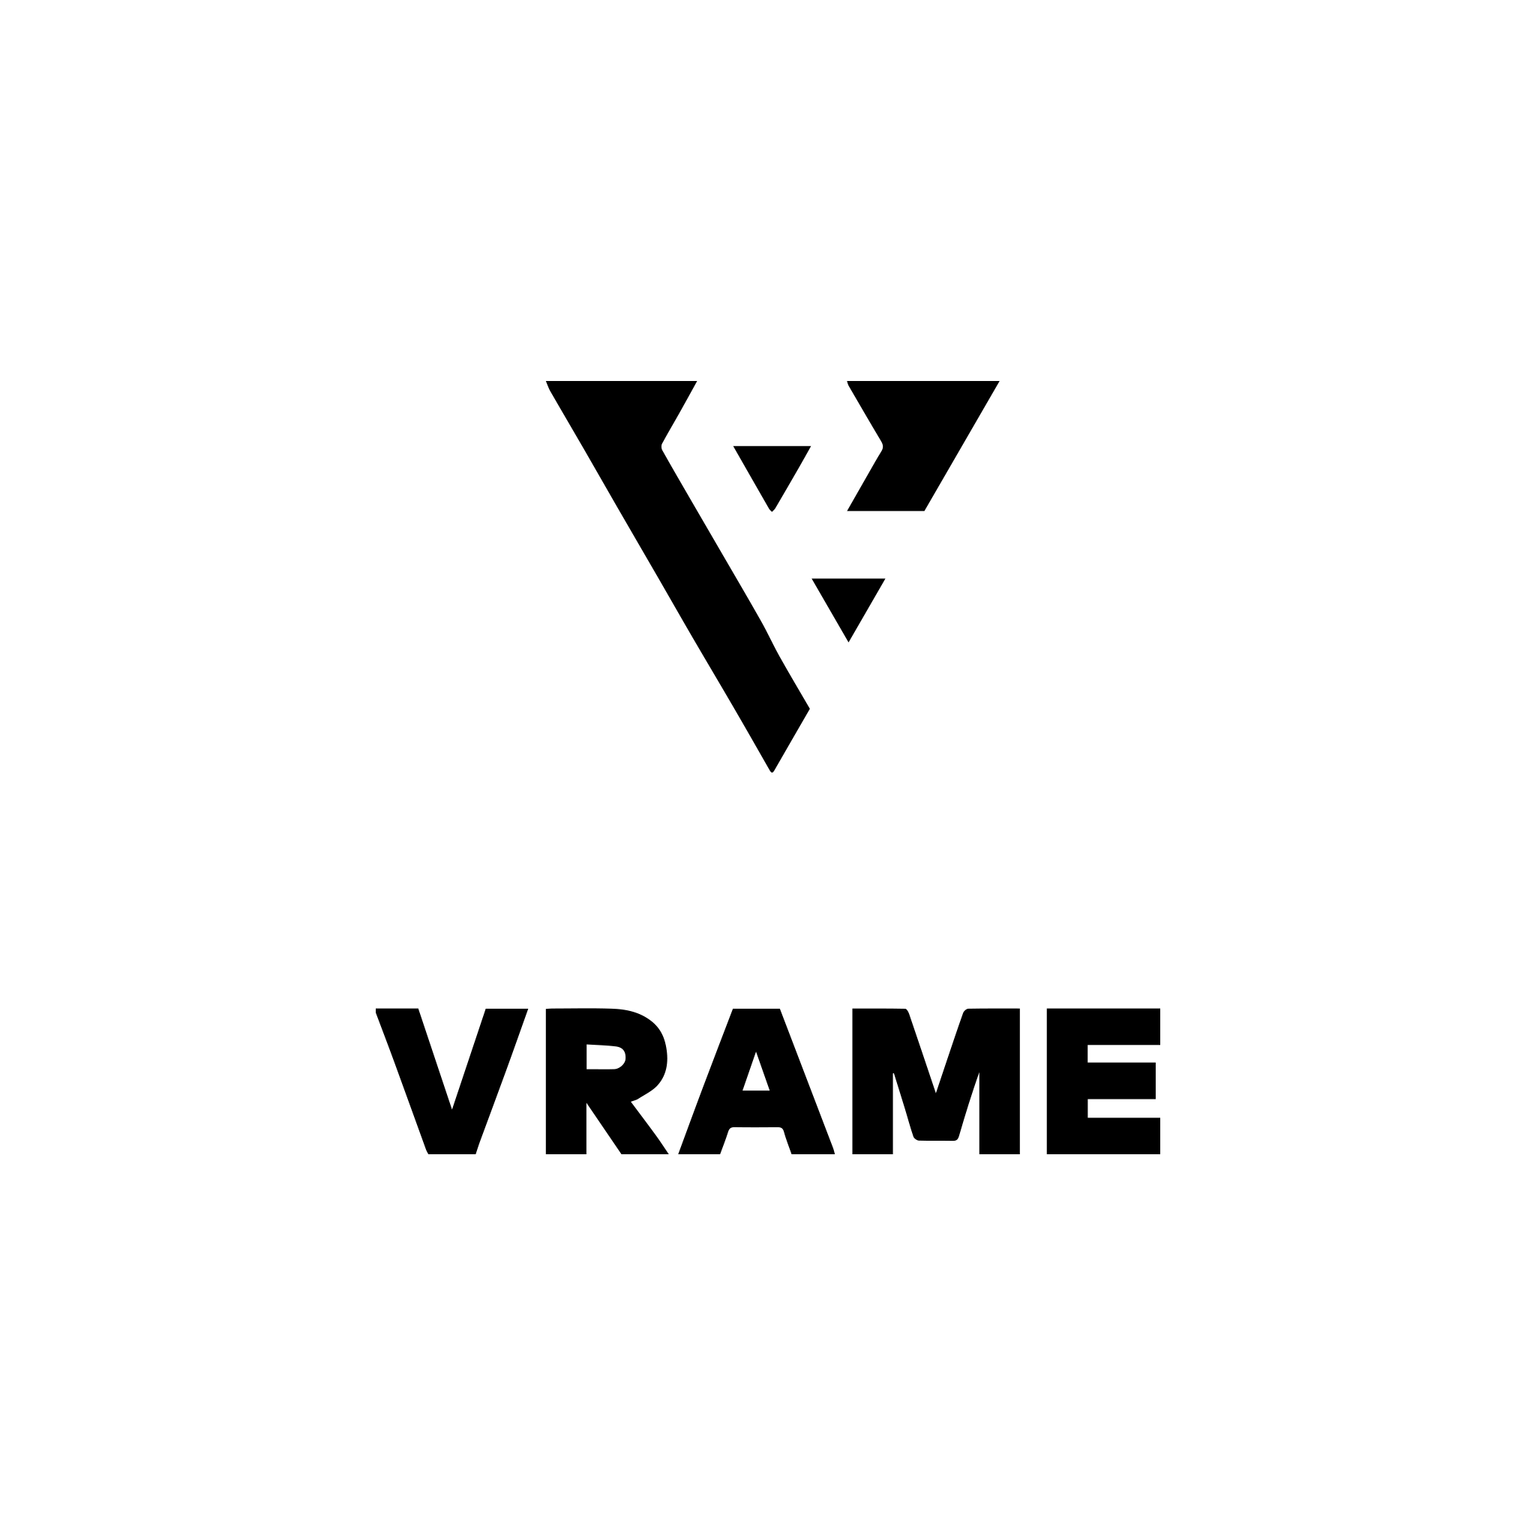 vrame_black_whitebg_001_preview